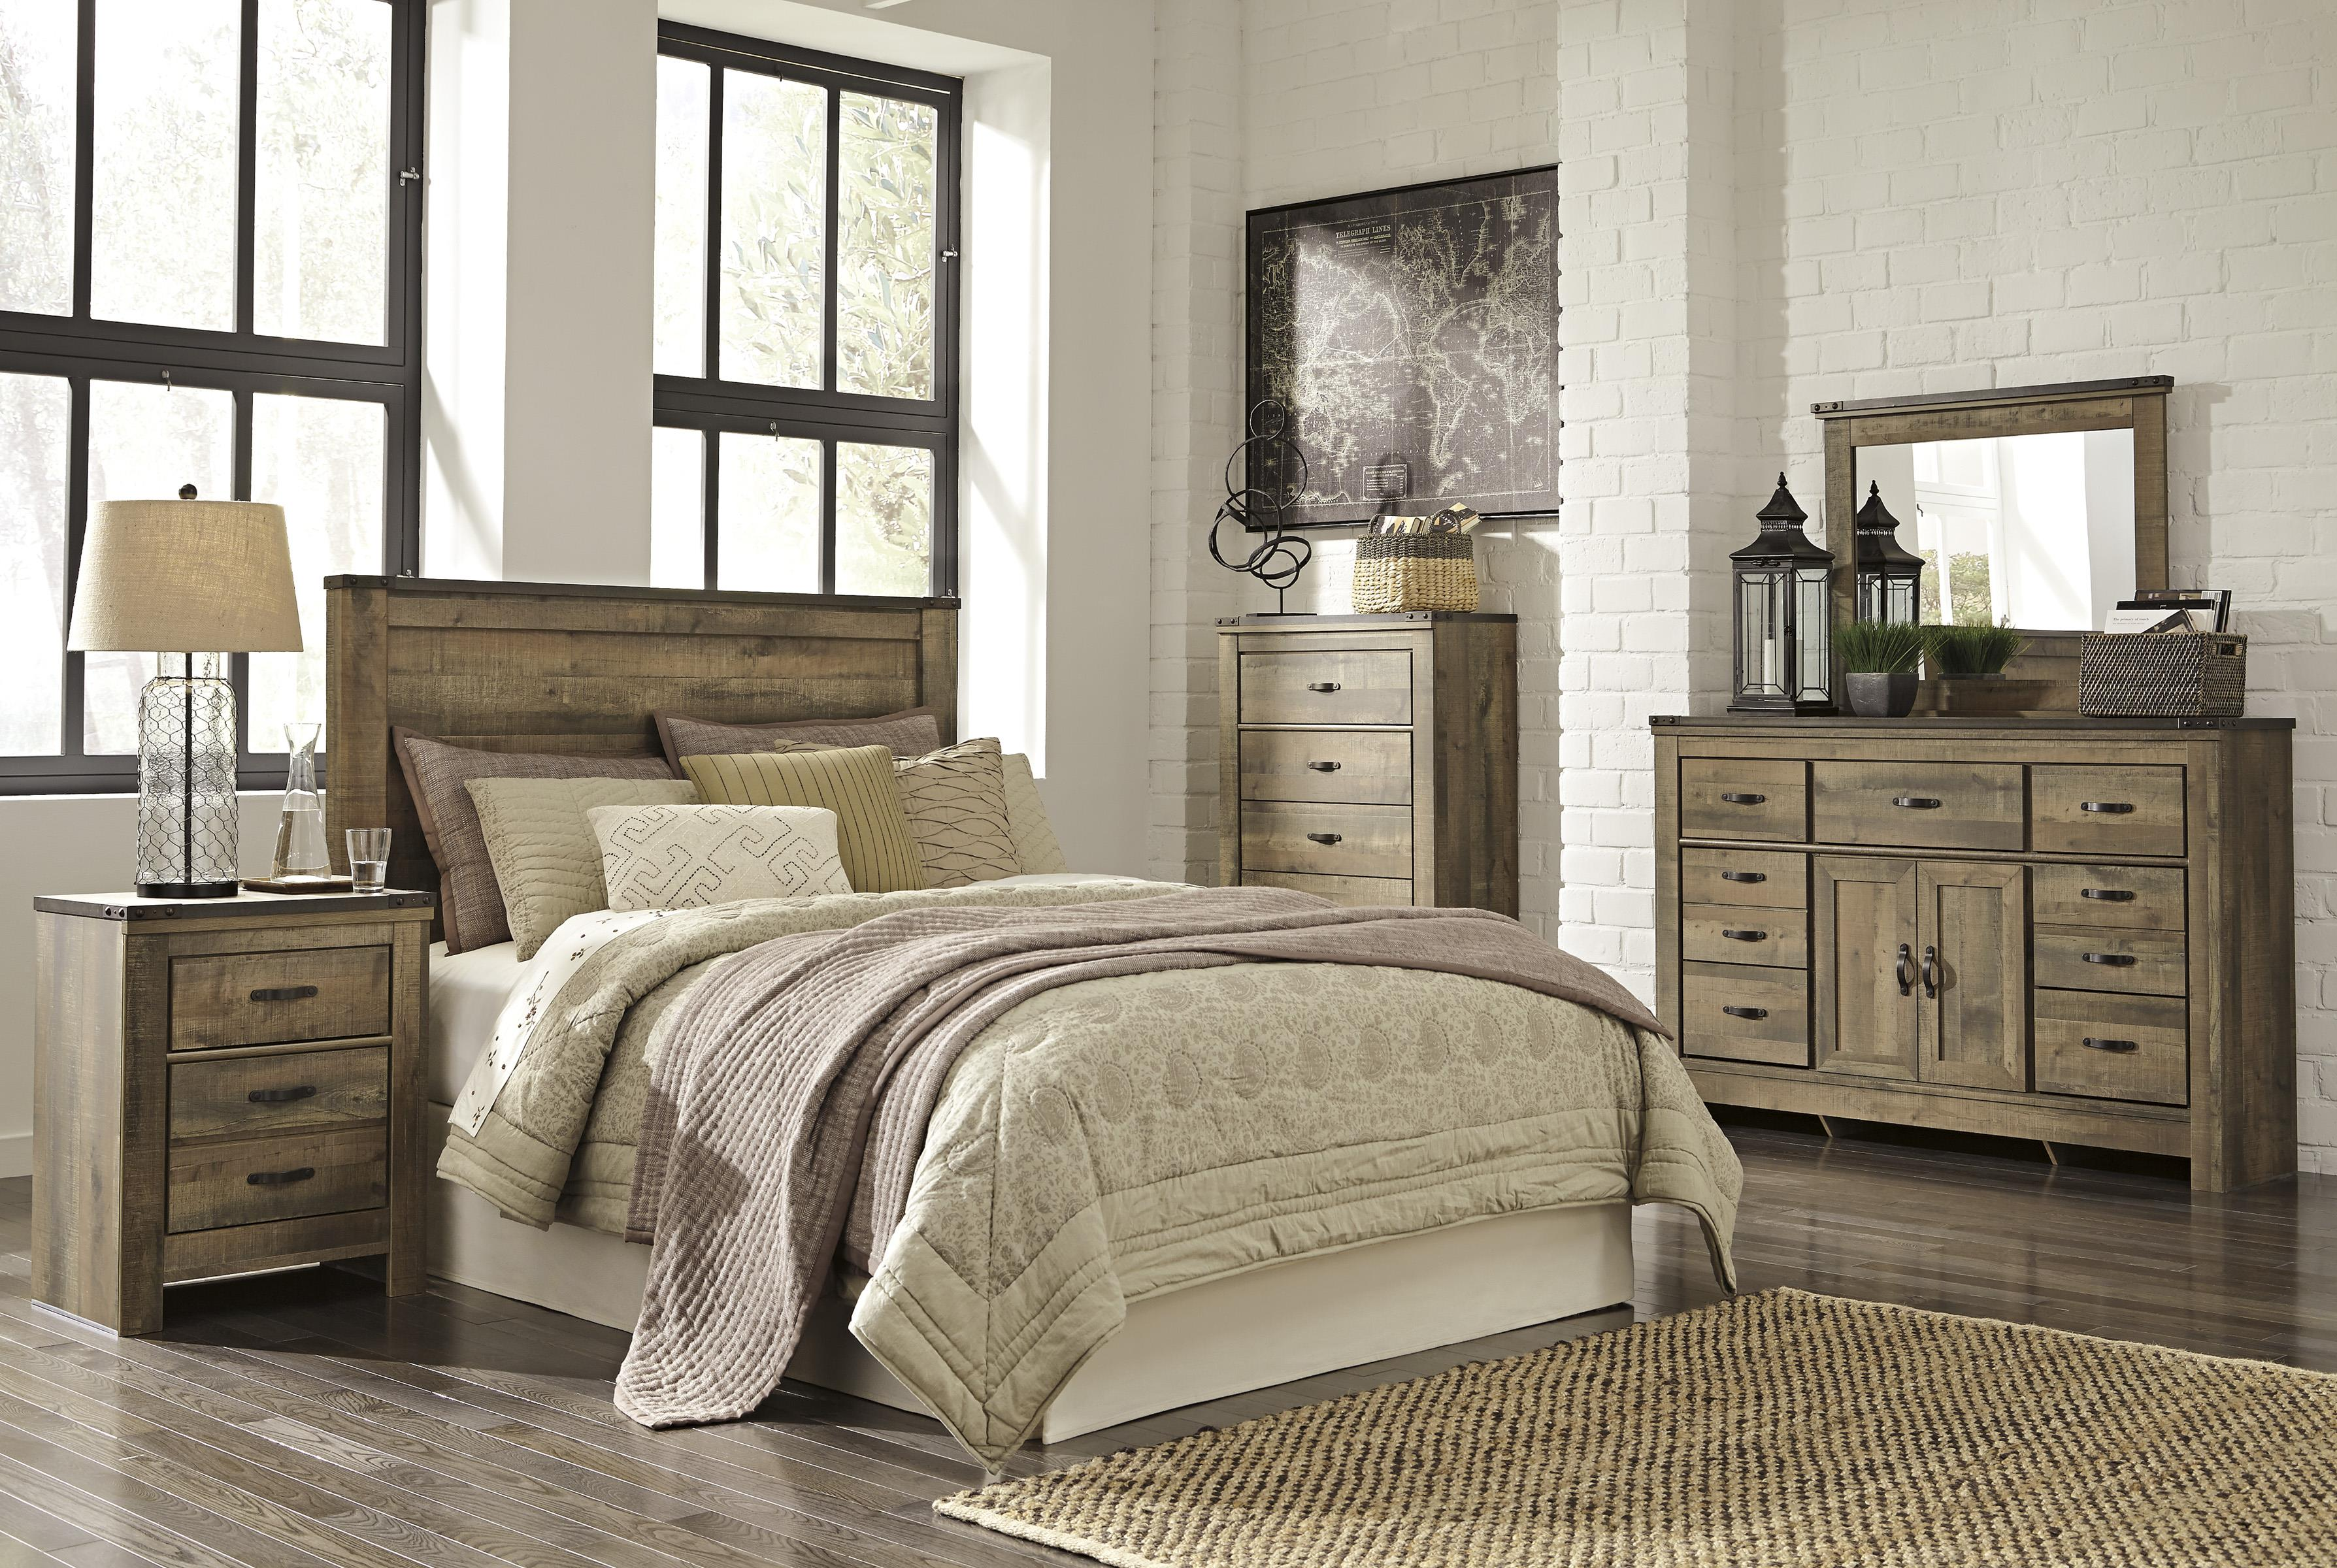 Signature Design By Ashley Trinell Rustic Look Queen Panel